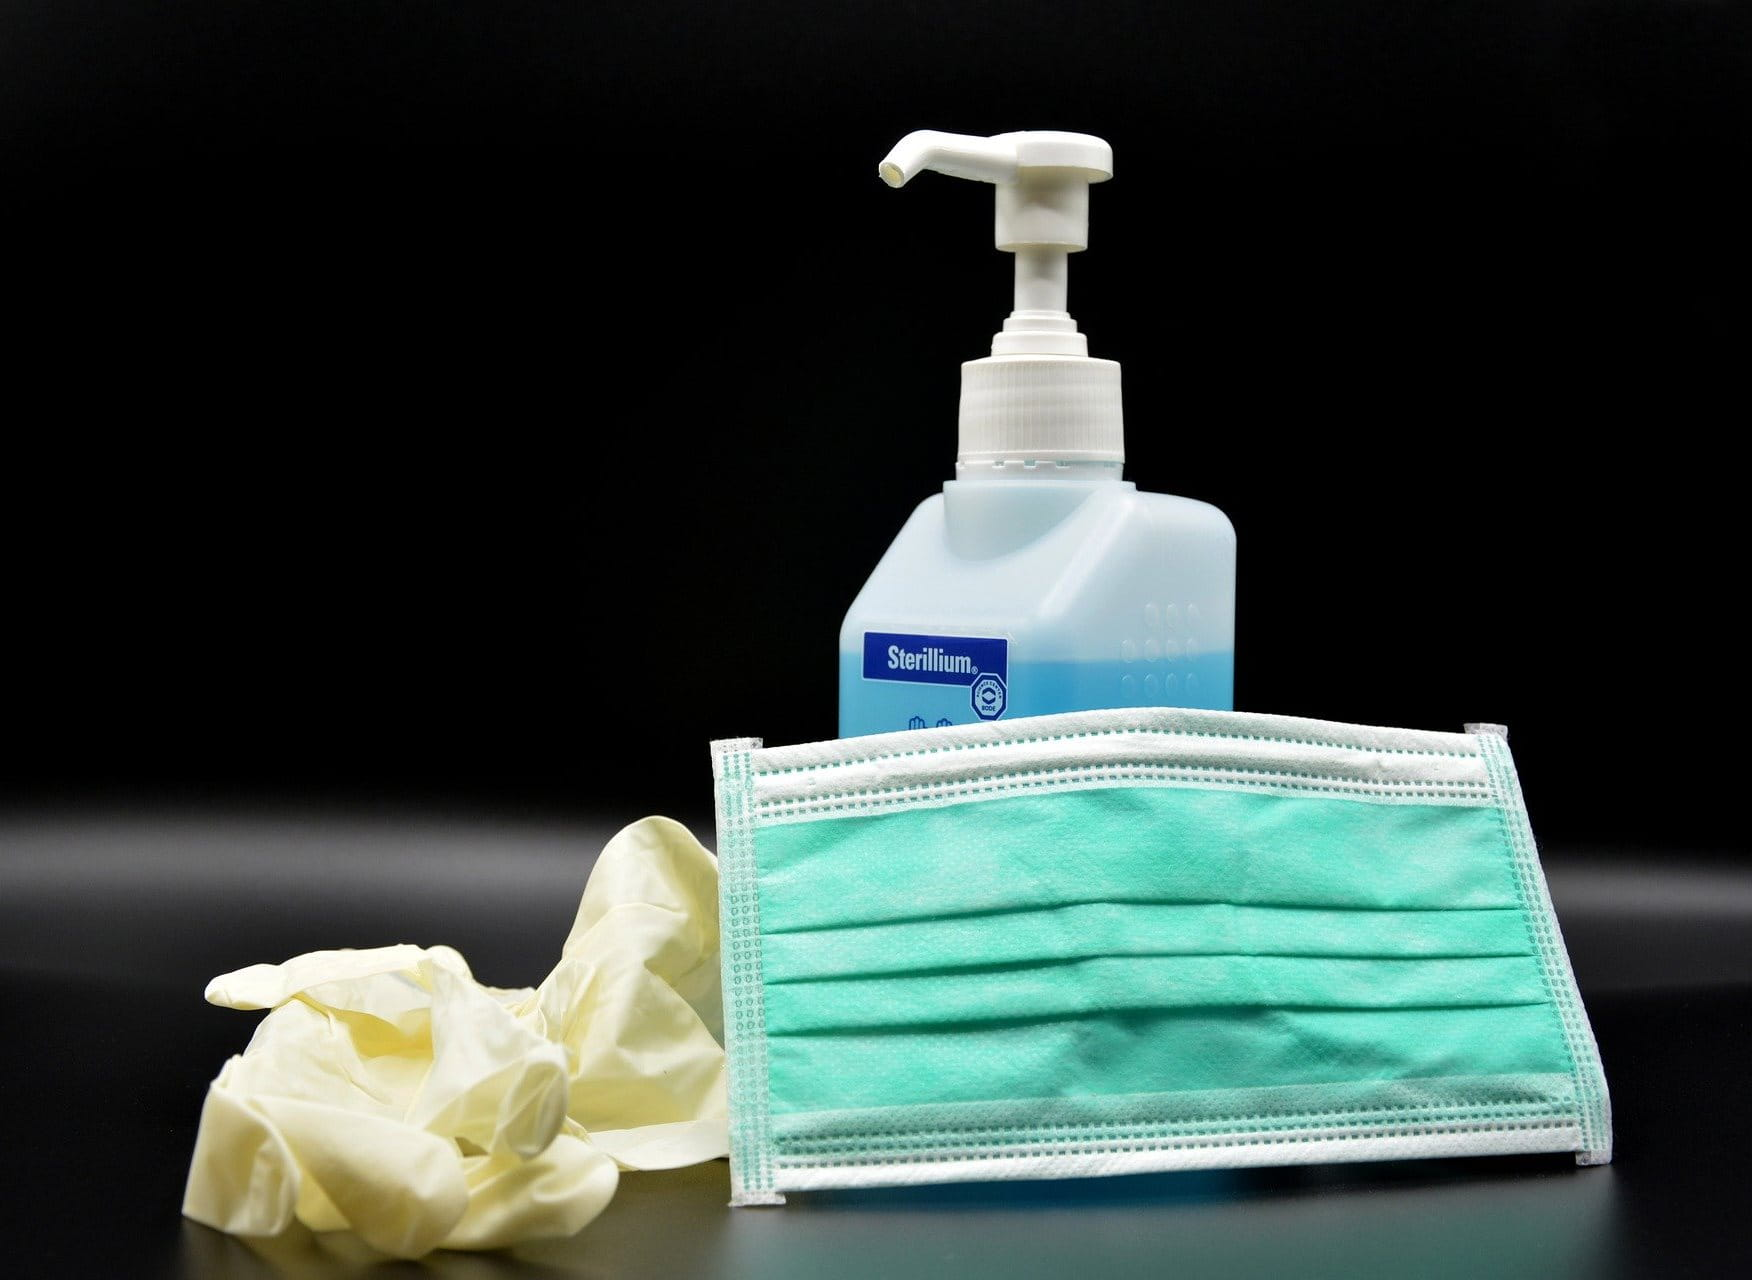 Disinfectant and protective gloves